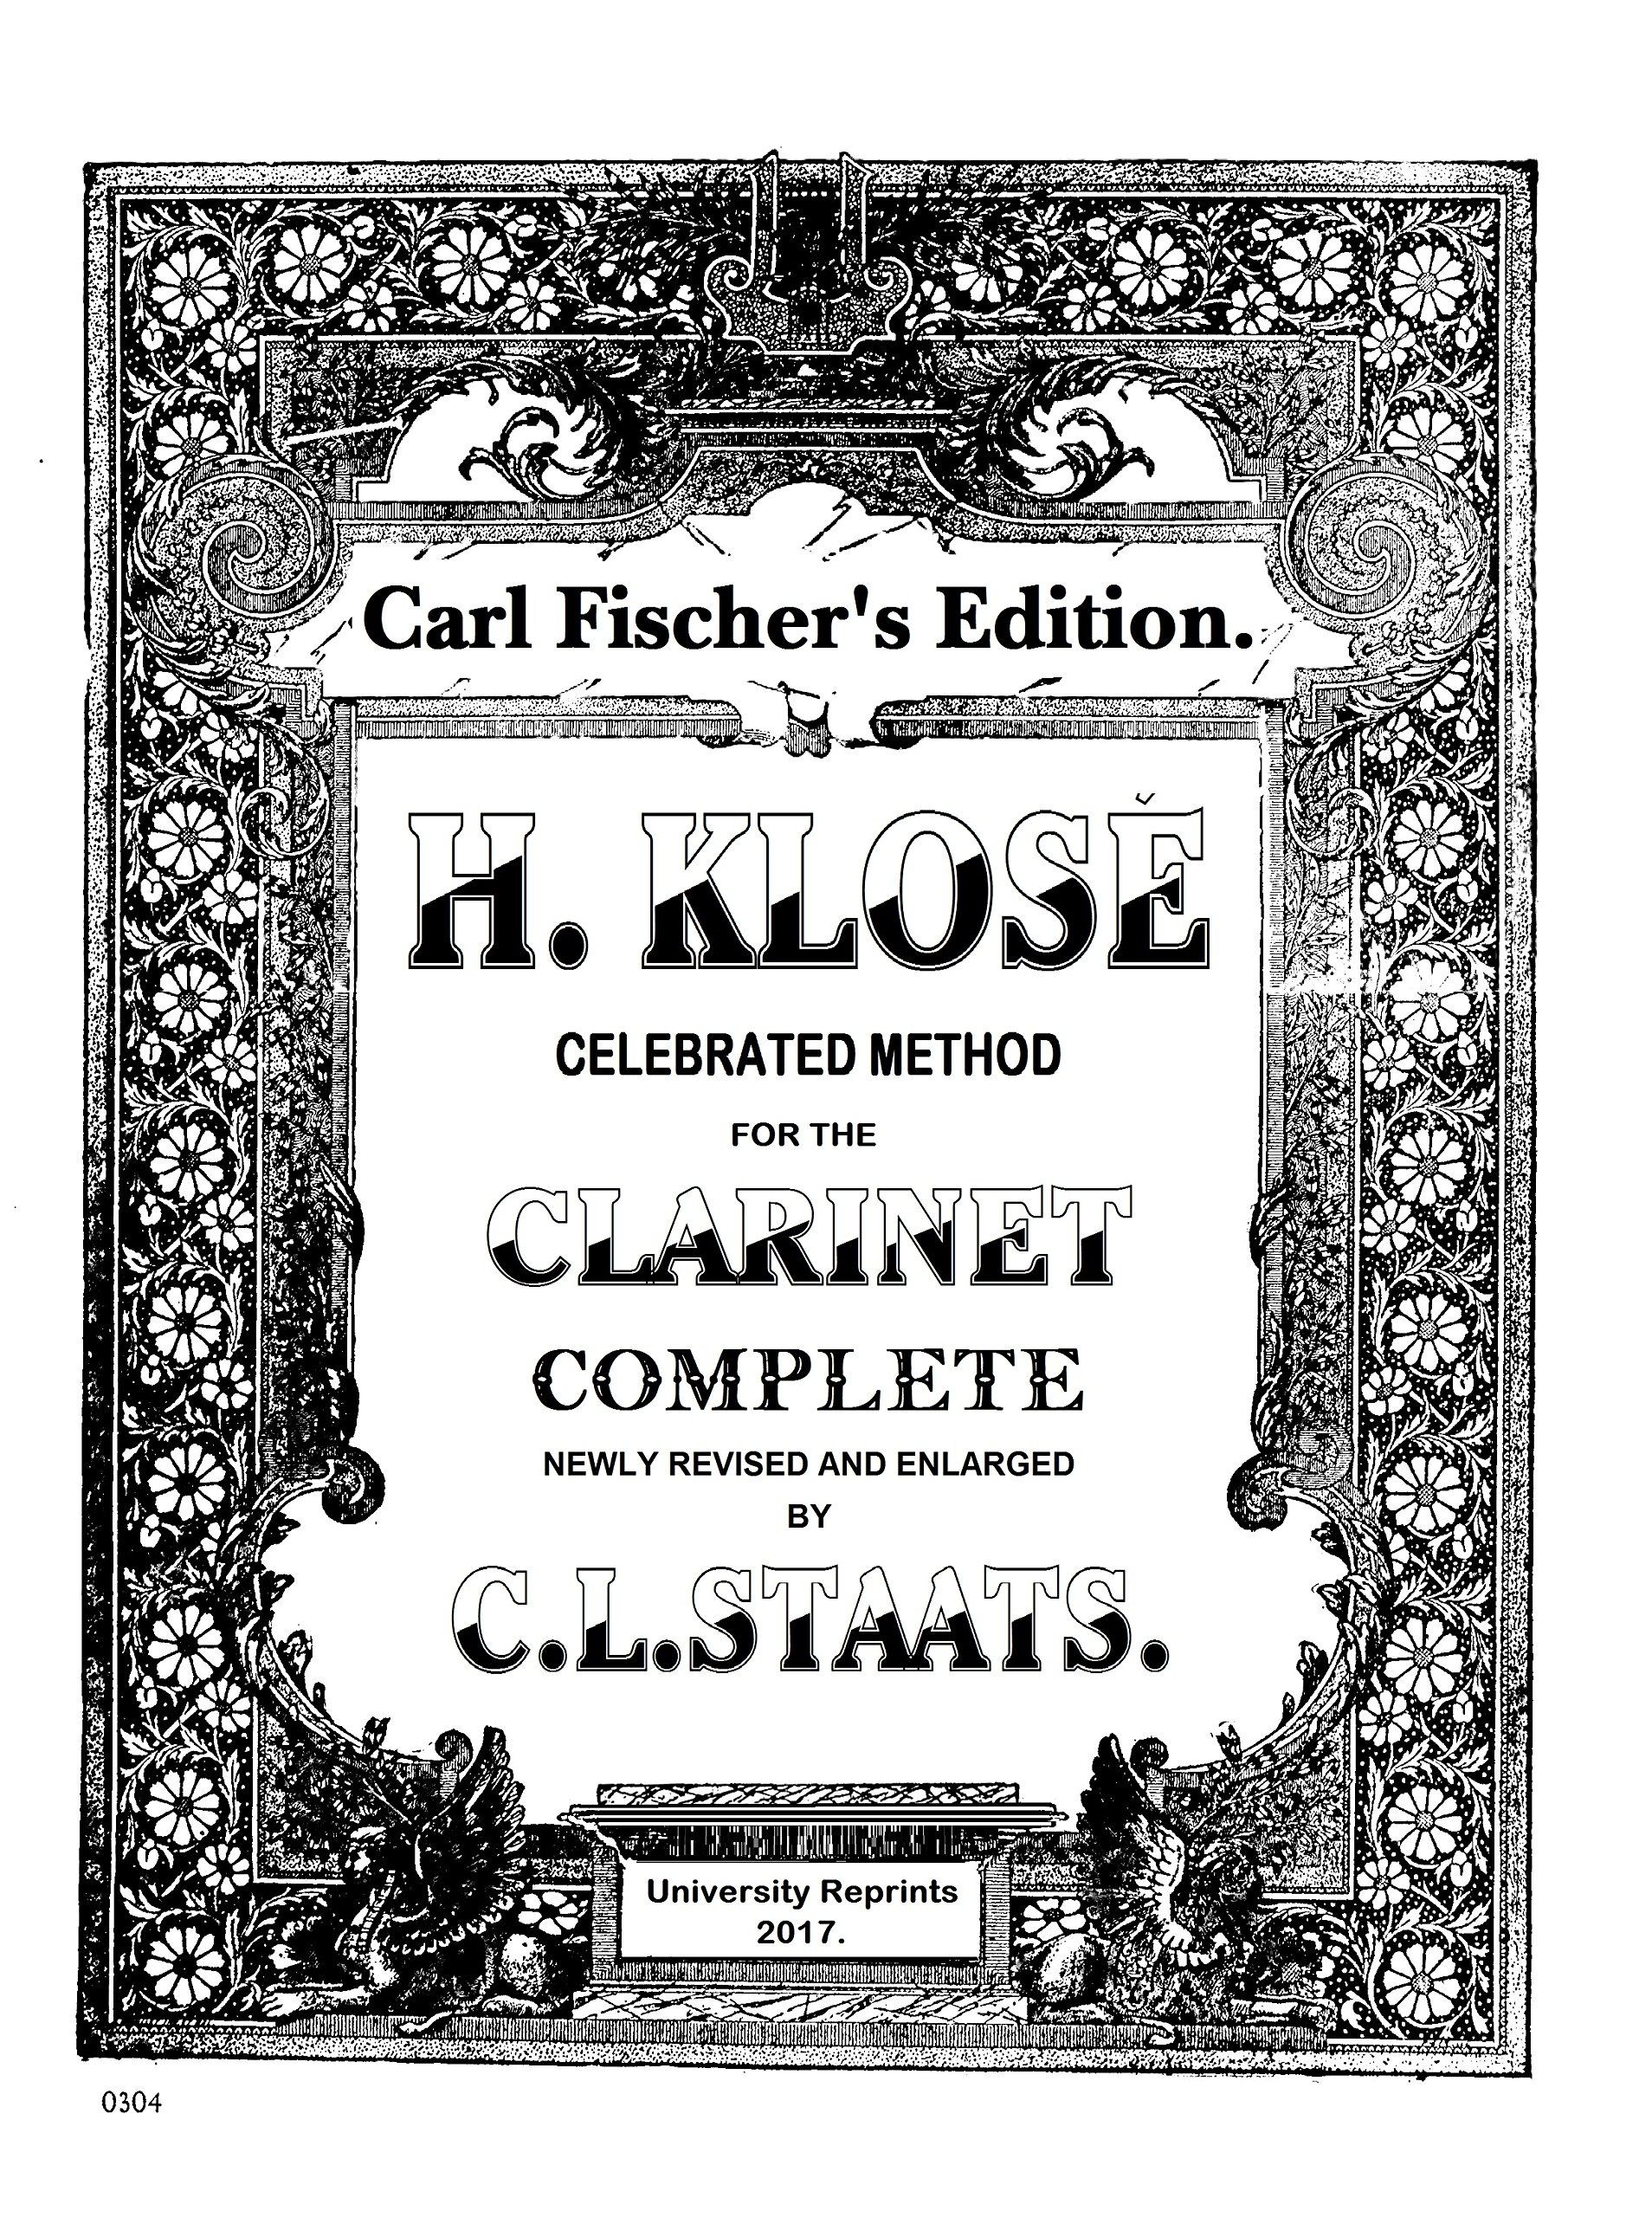 Celebrated method for the clarinet by H Klose. COMPLETE in volumes 1 and 2. (Carl Fischer's Edition) [Re-Imaged for Greater Clarity. Loose Leaf Facsimile Edition] PDF